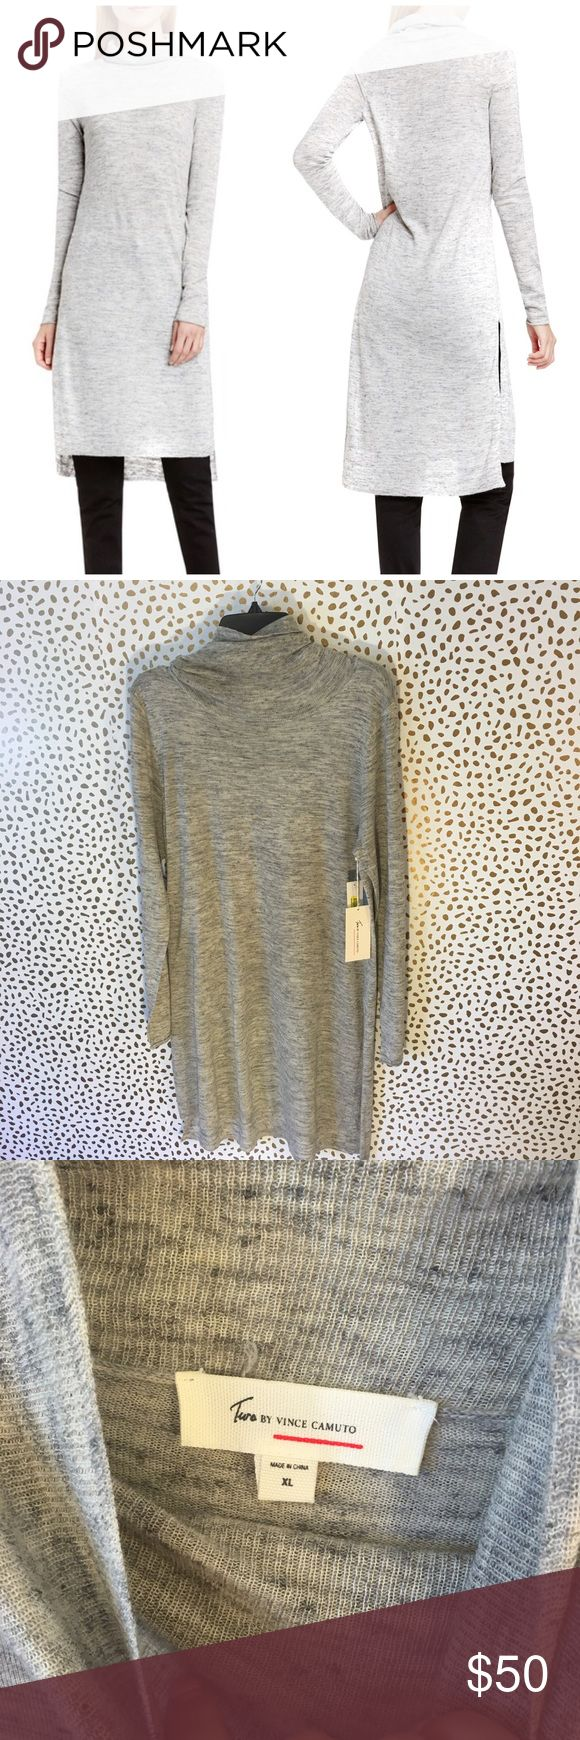 NWT Two by Vince Camuto Side Slit Long Tunic So cute and perfect for fall! Brand new with tags. Long with turtleneck and side slits. Size XL. Linen blend. No trades!! 062517100dr Vince Camuto Sweaters Cowl & Turtlenecks